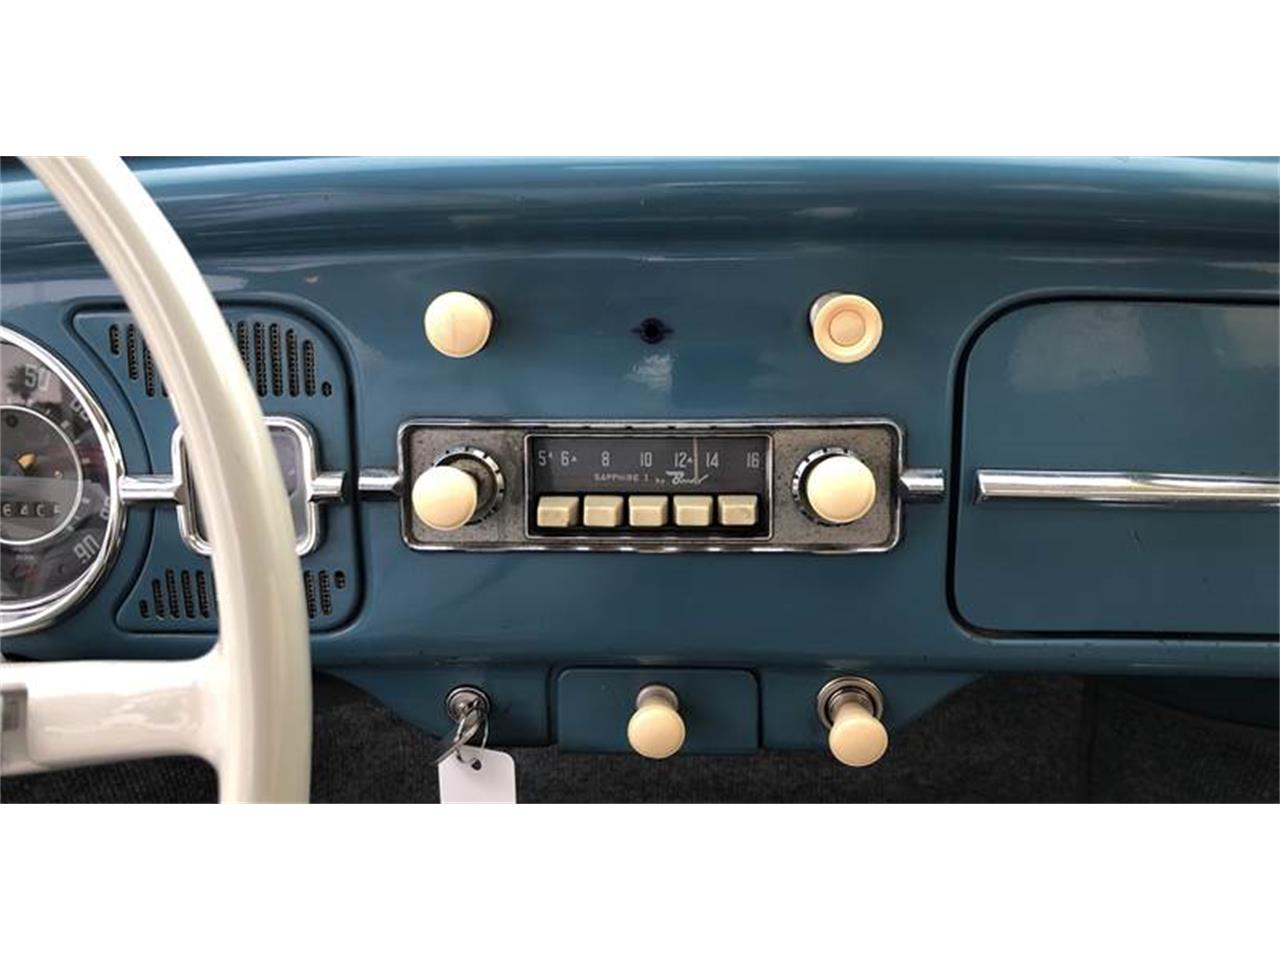 Large Picture of '63 Beetle located in Brea California Auction Vehicle - QEU8